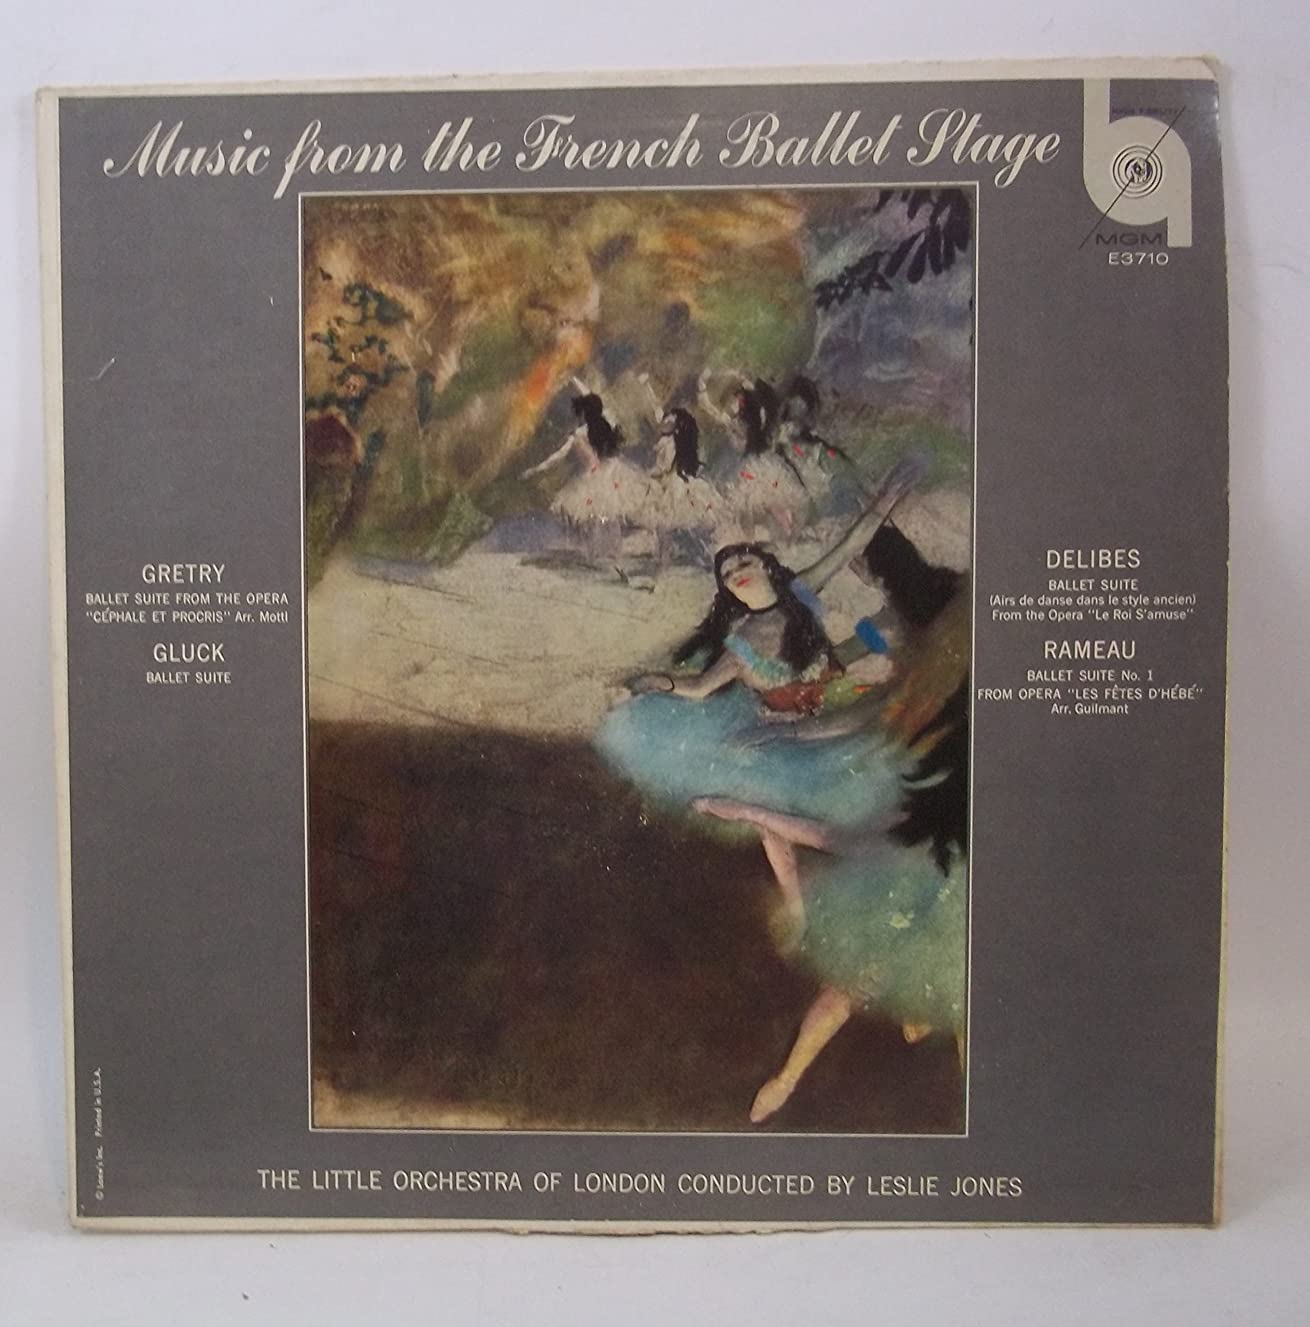 Music from the French Ballet Stage